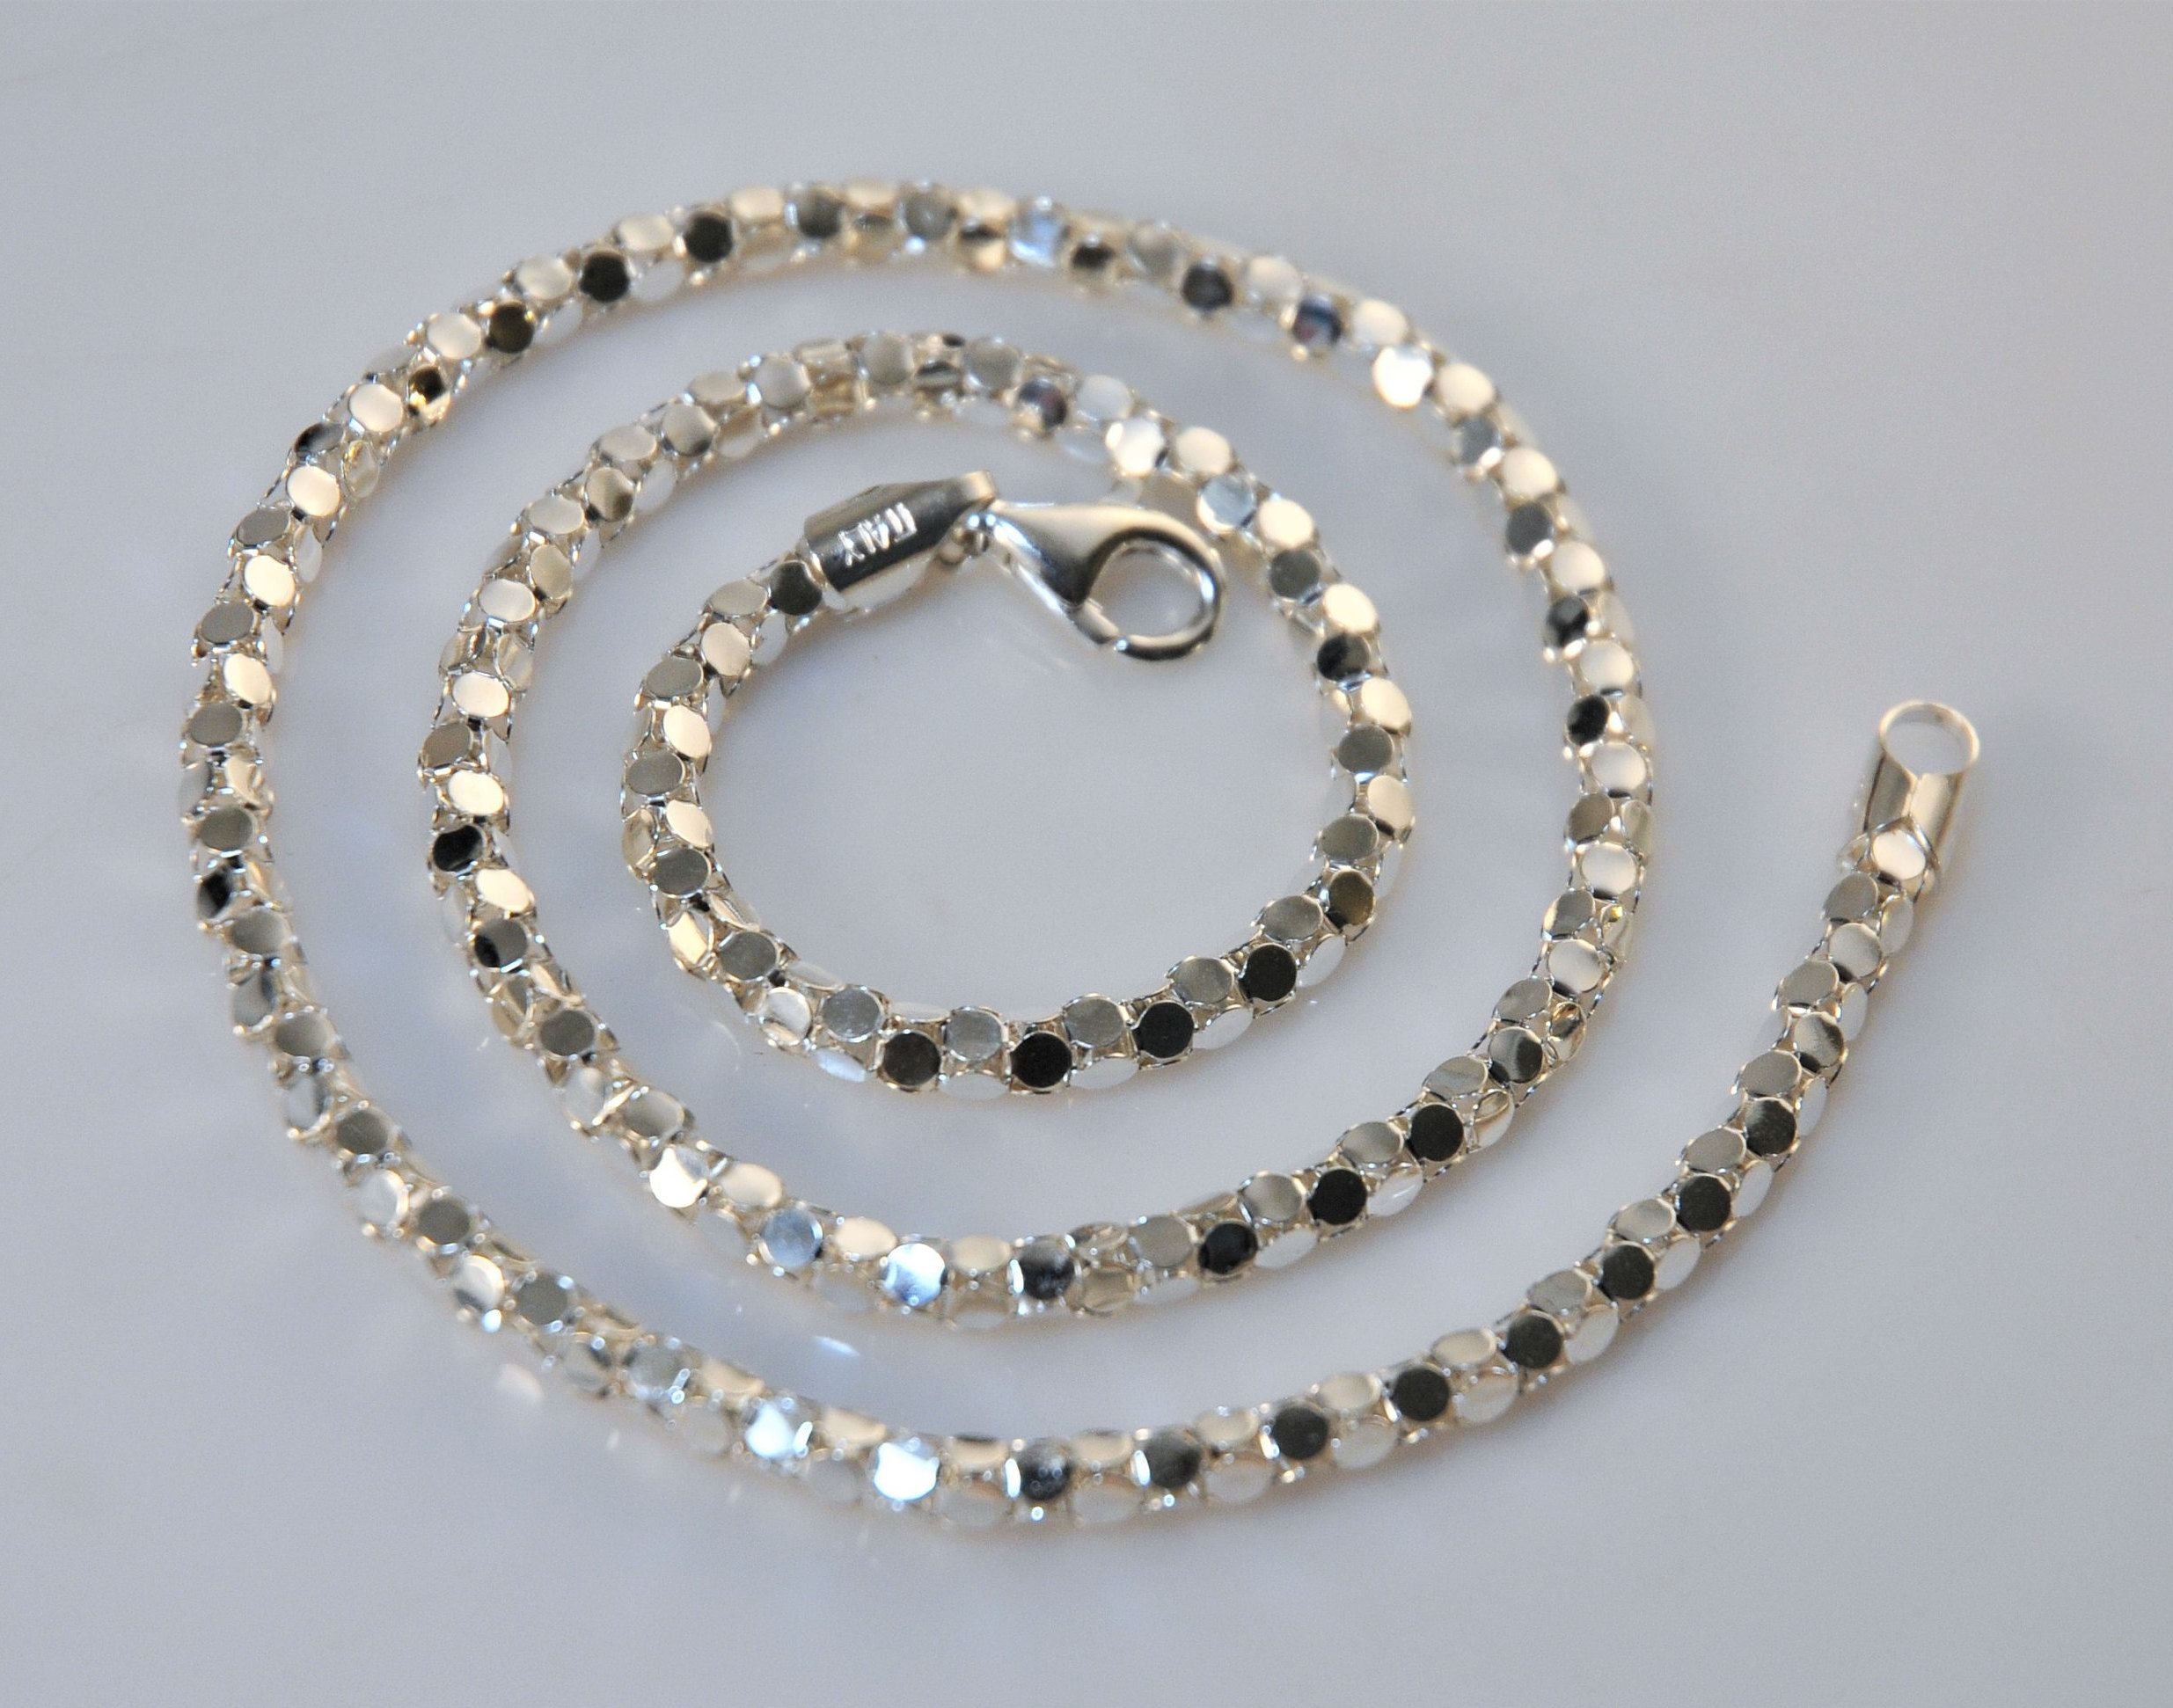 925 Sterling Silver Italy Milor Oval Style Chain Necklace 18